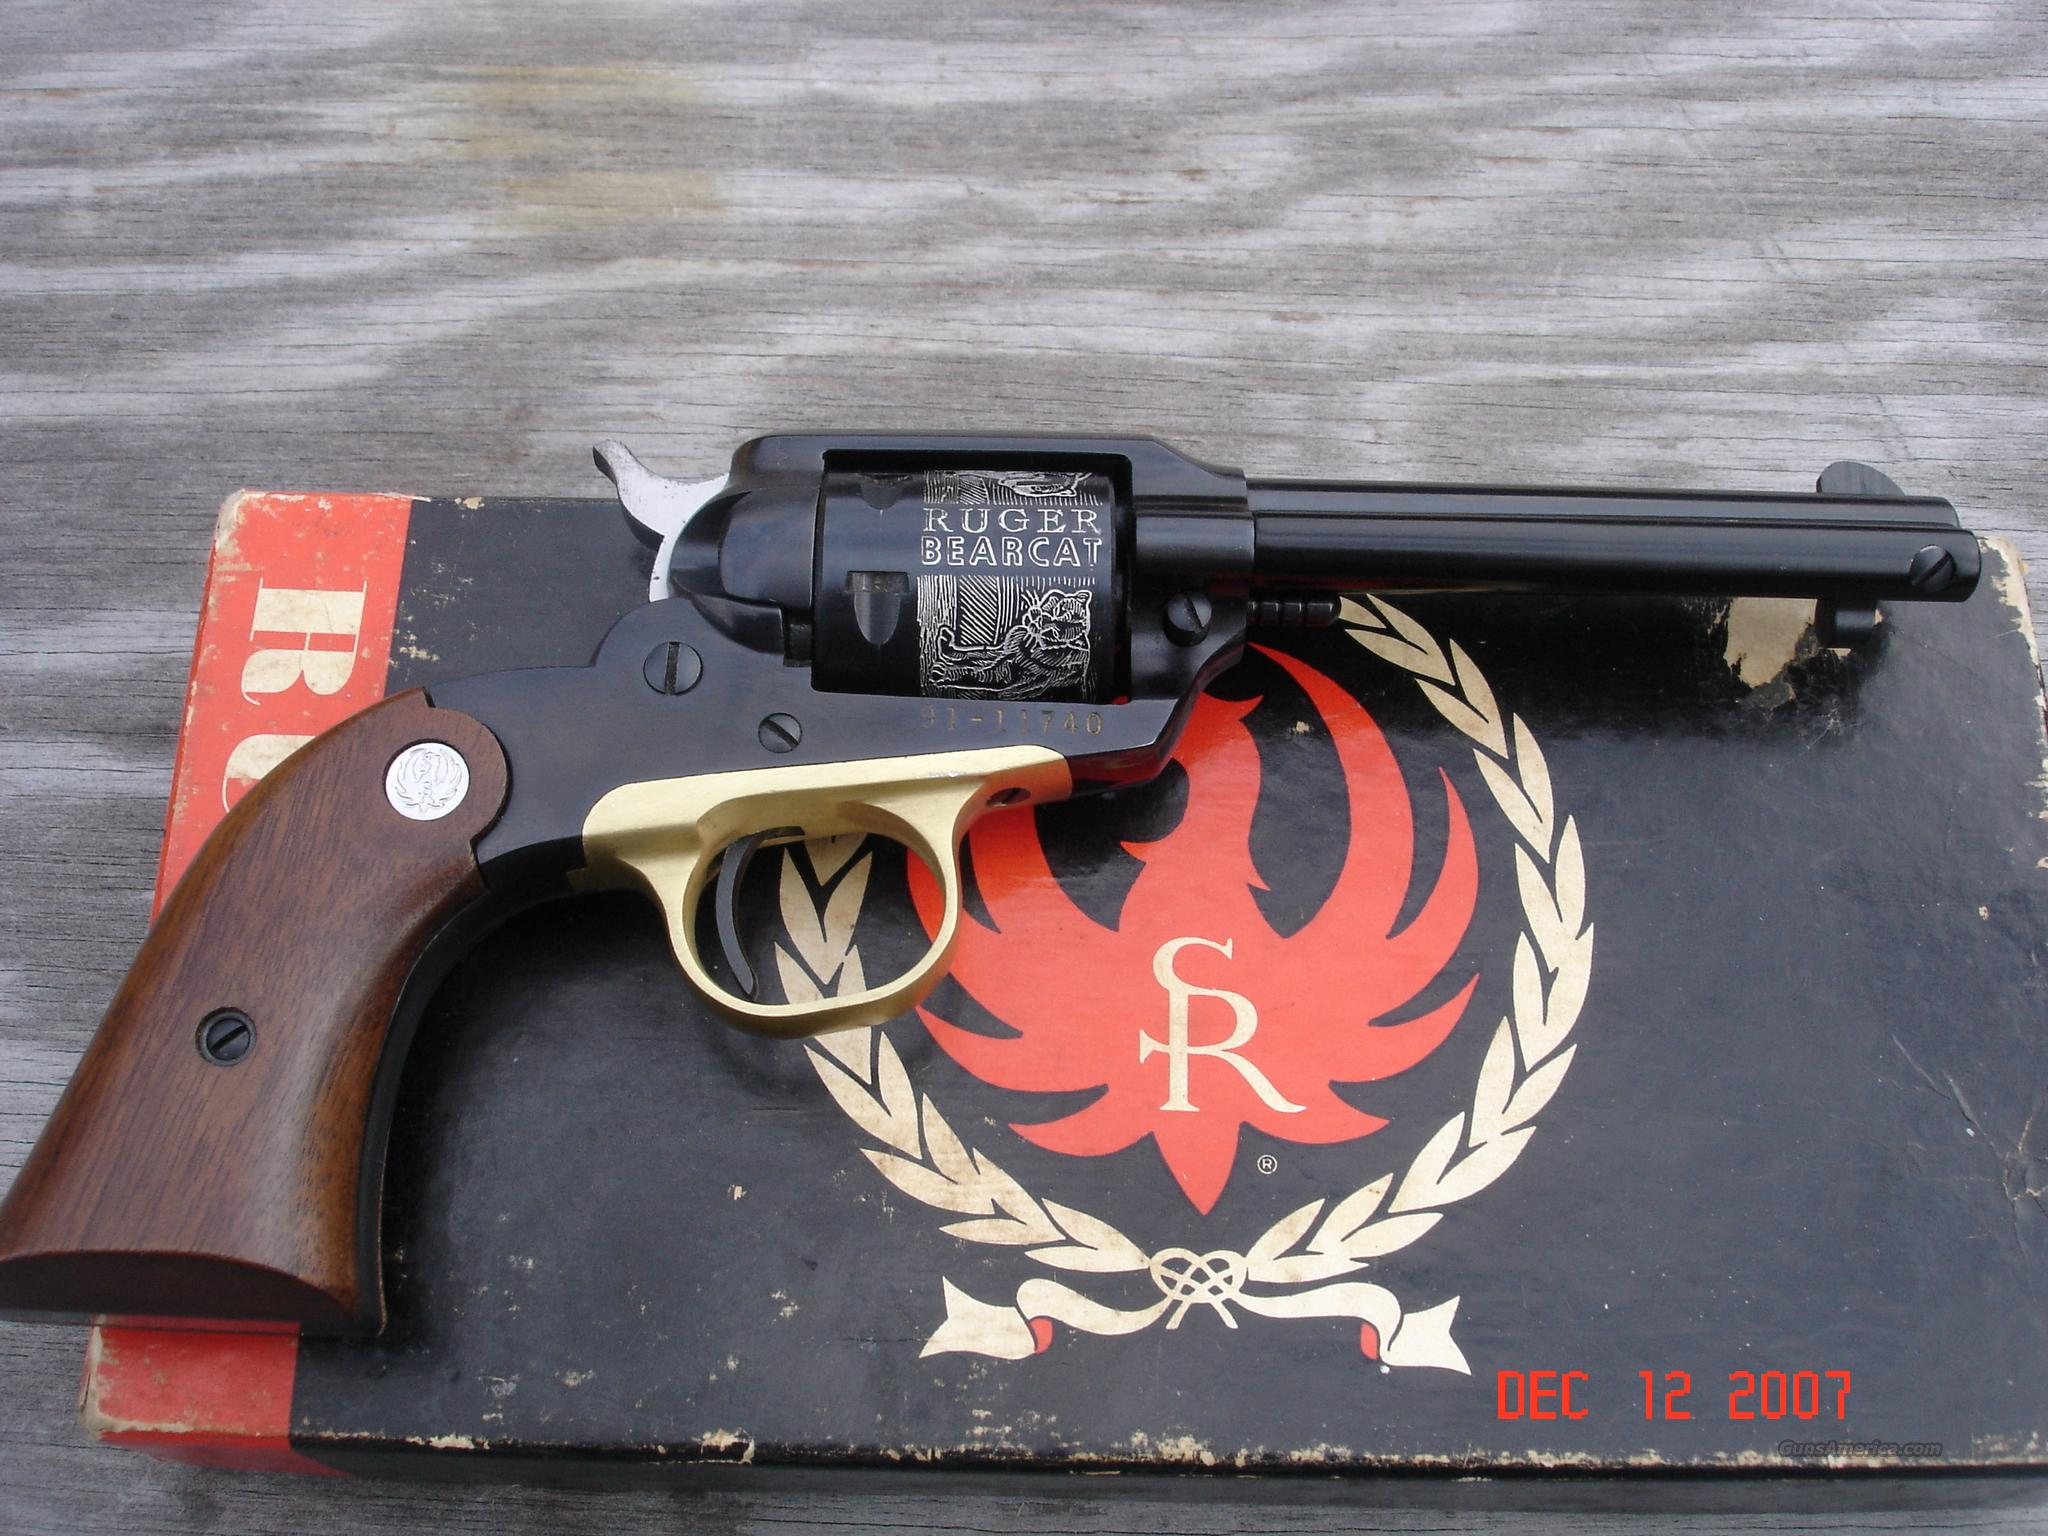 Ruger Bearcat 22 Cal.  Guns > Pistols > Ruger Single Action Revolvers > Single Six Type